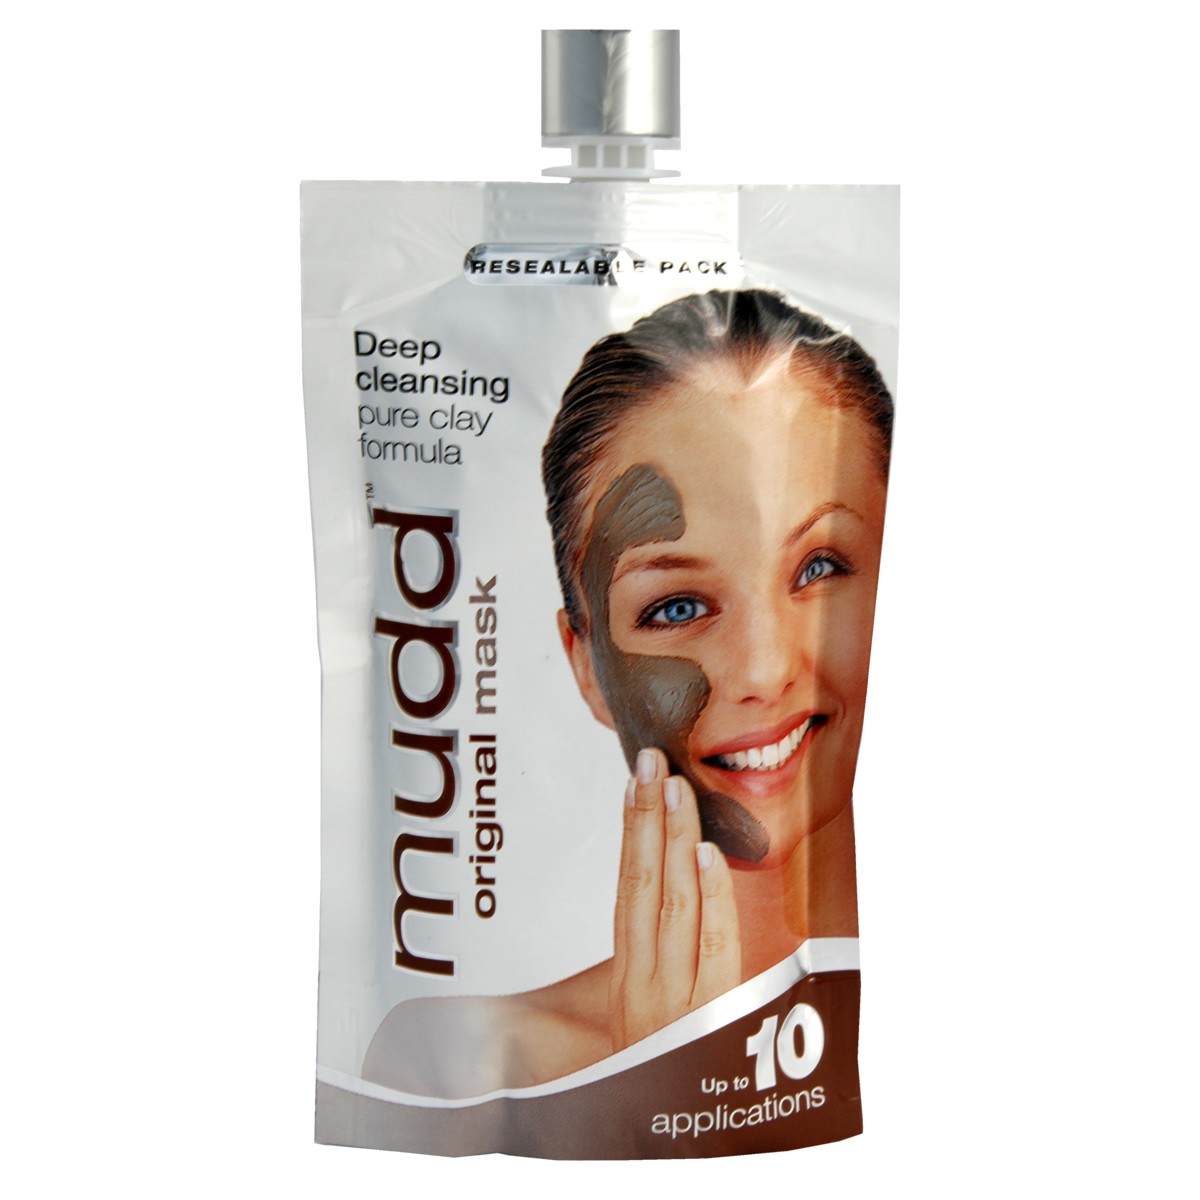 Mudd Original Mask Deep Cleansing Pure Clay Formula - Resealable Pack